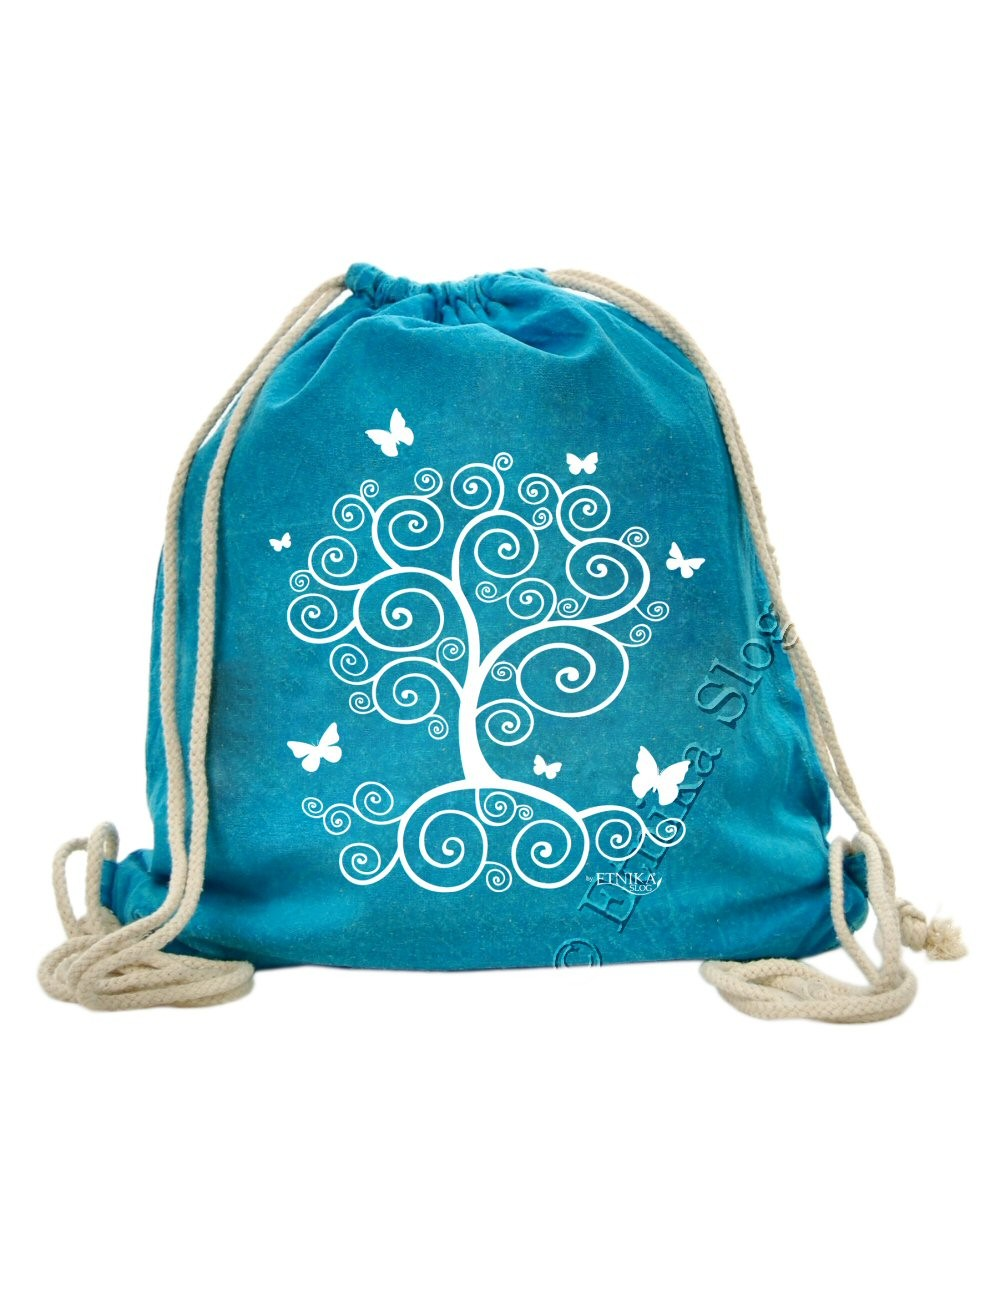 UNICOLOR BAGGY BACKPACKS WITH PRINTS BS-ZC36-12 - Oriente Import S.r.l.